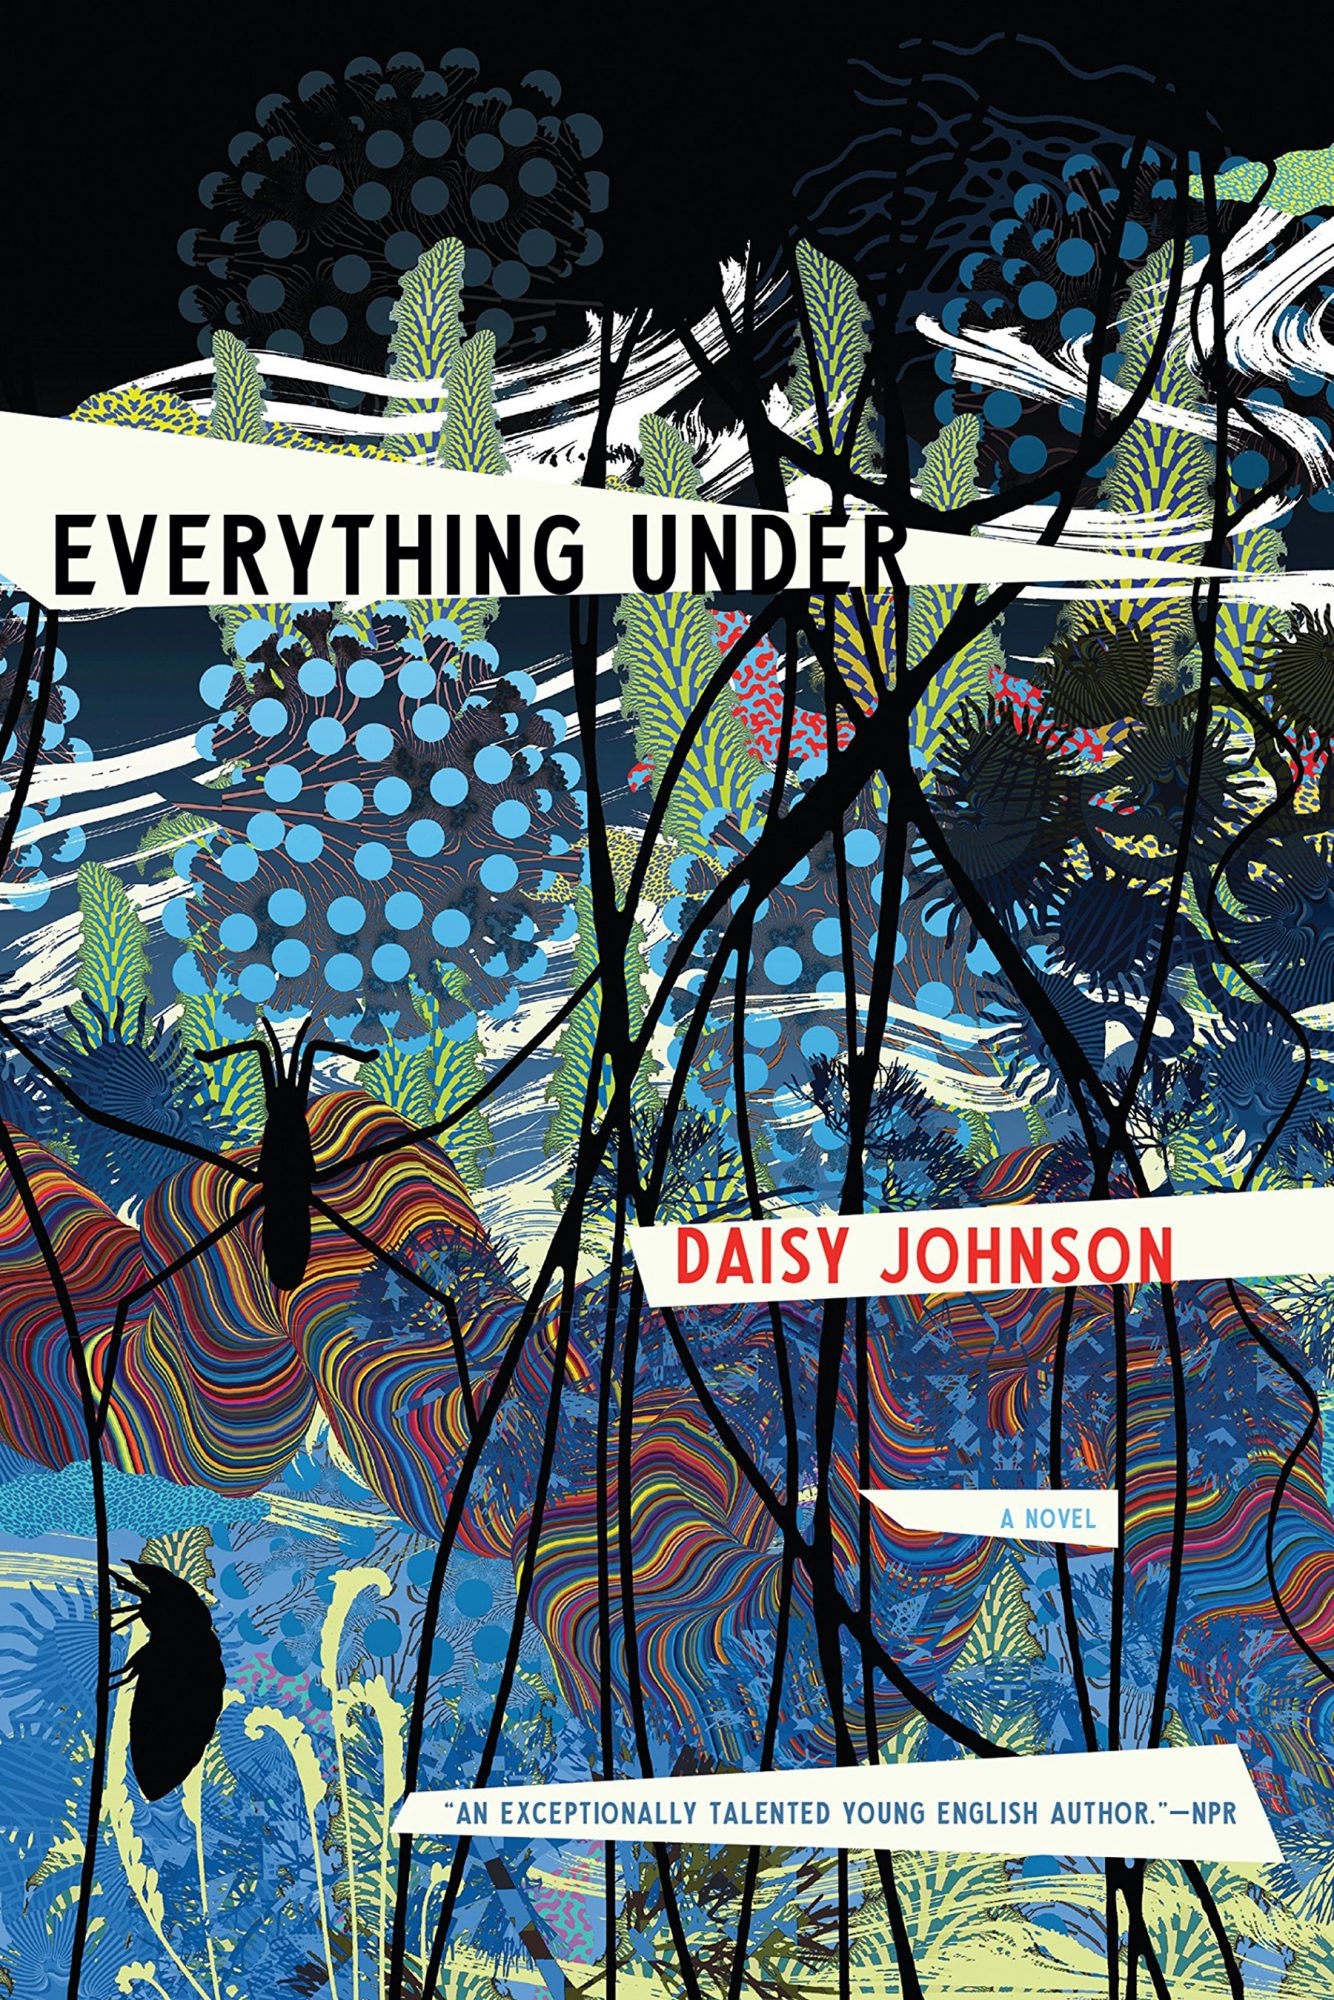 Everything Under by Daisy JohnsonCredit: Jonathan Cape Ltd